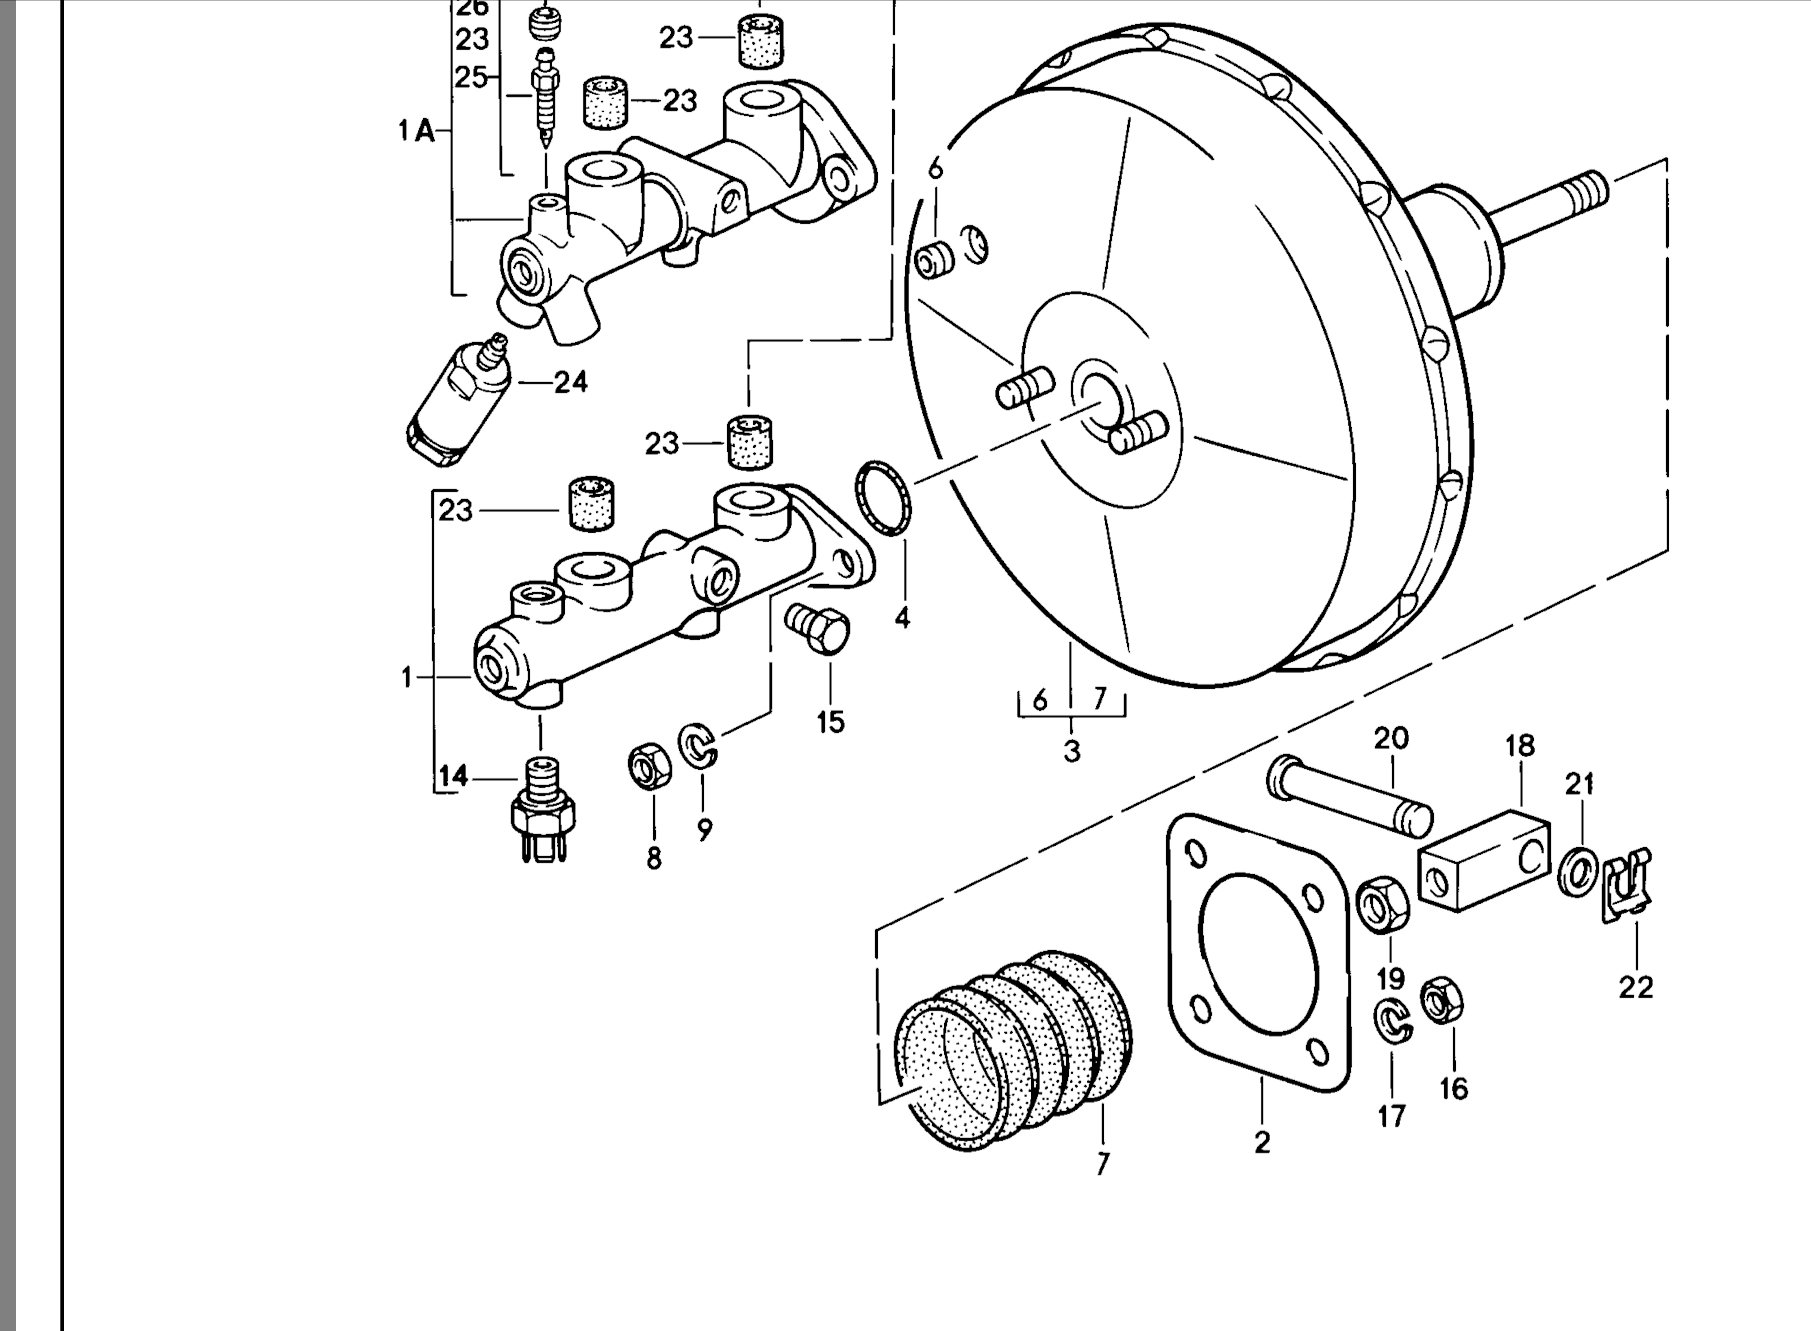 Best Material For Making A Brake Power Booster Gasket